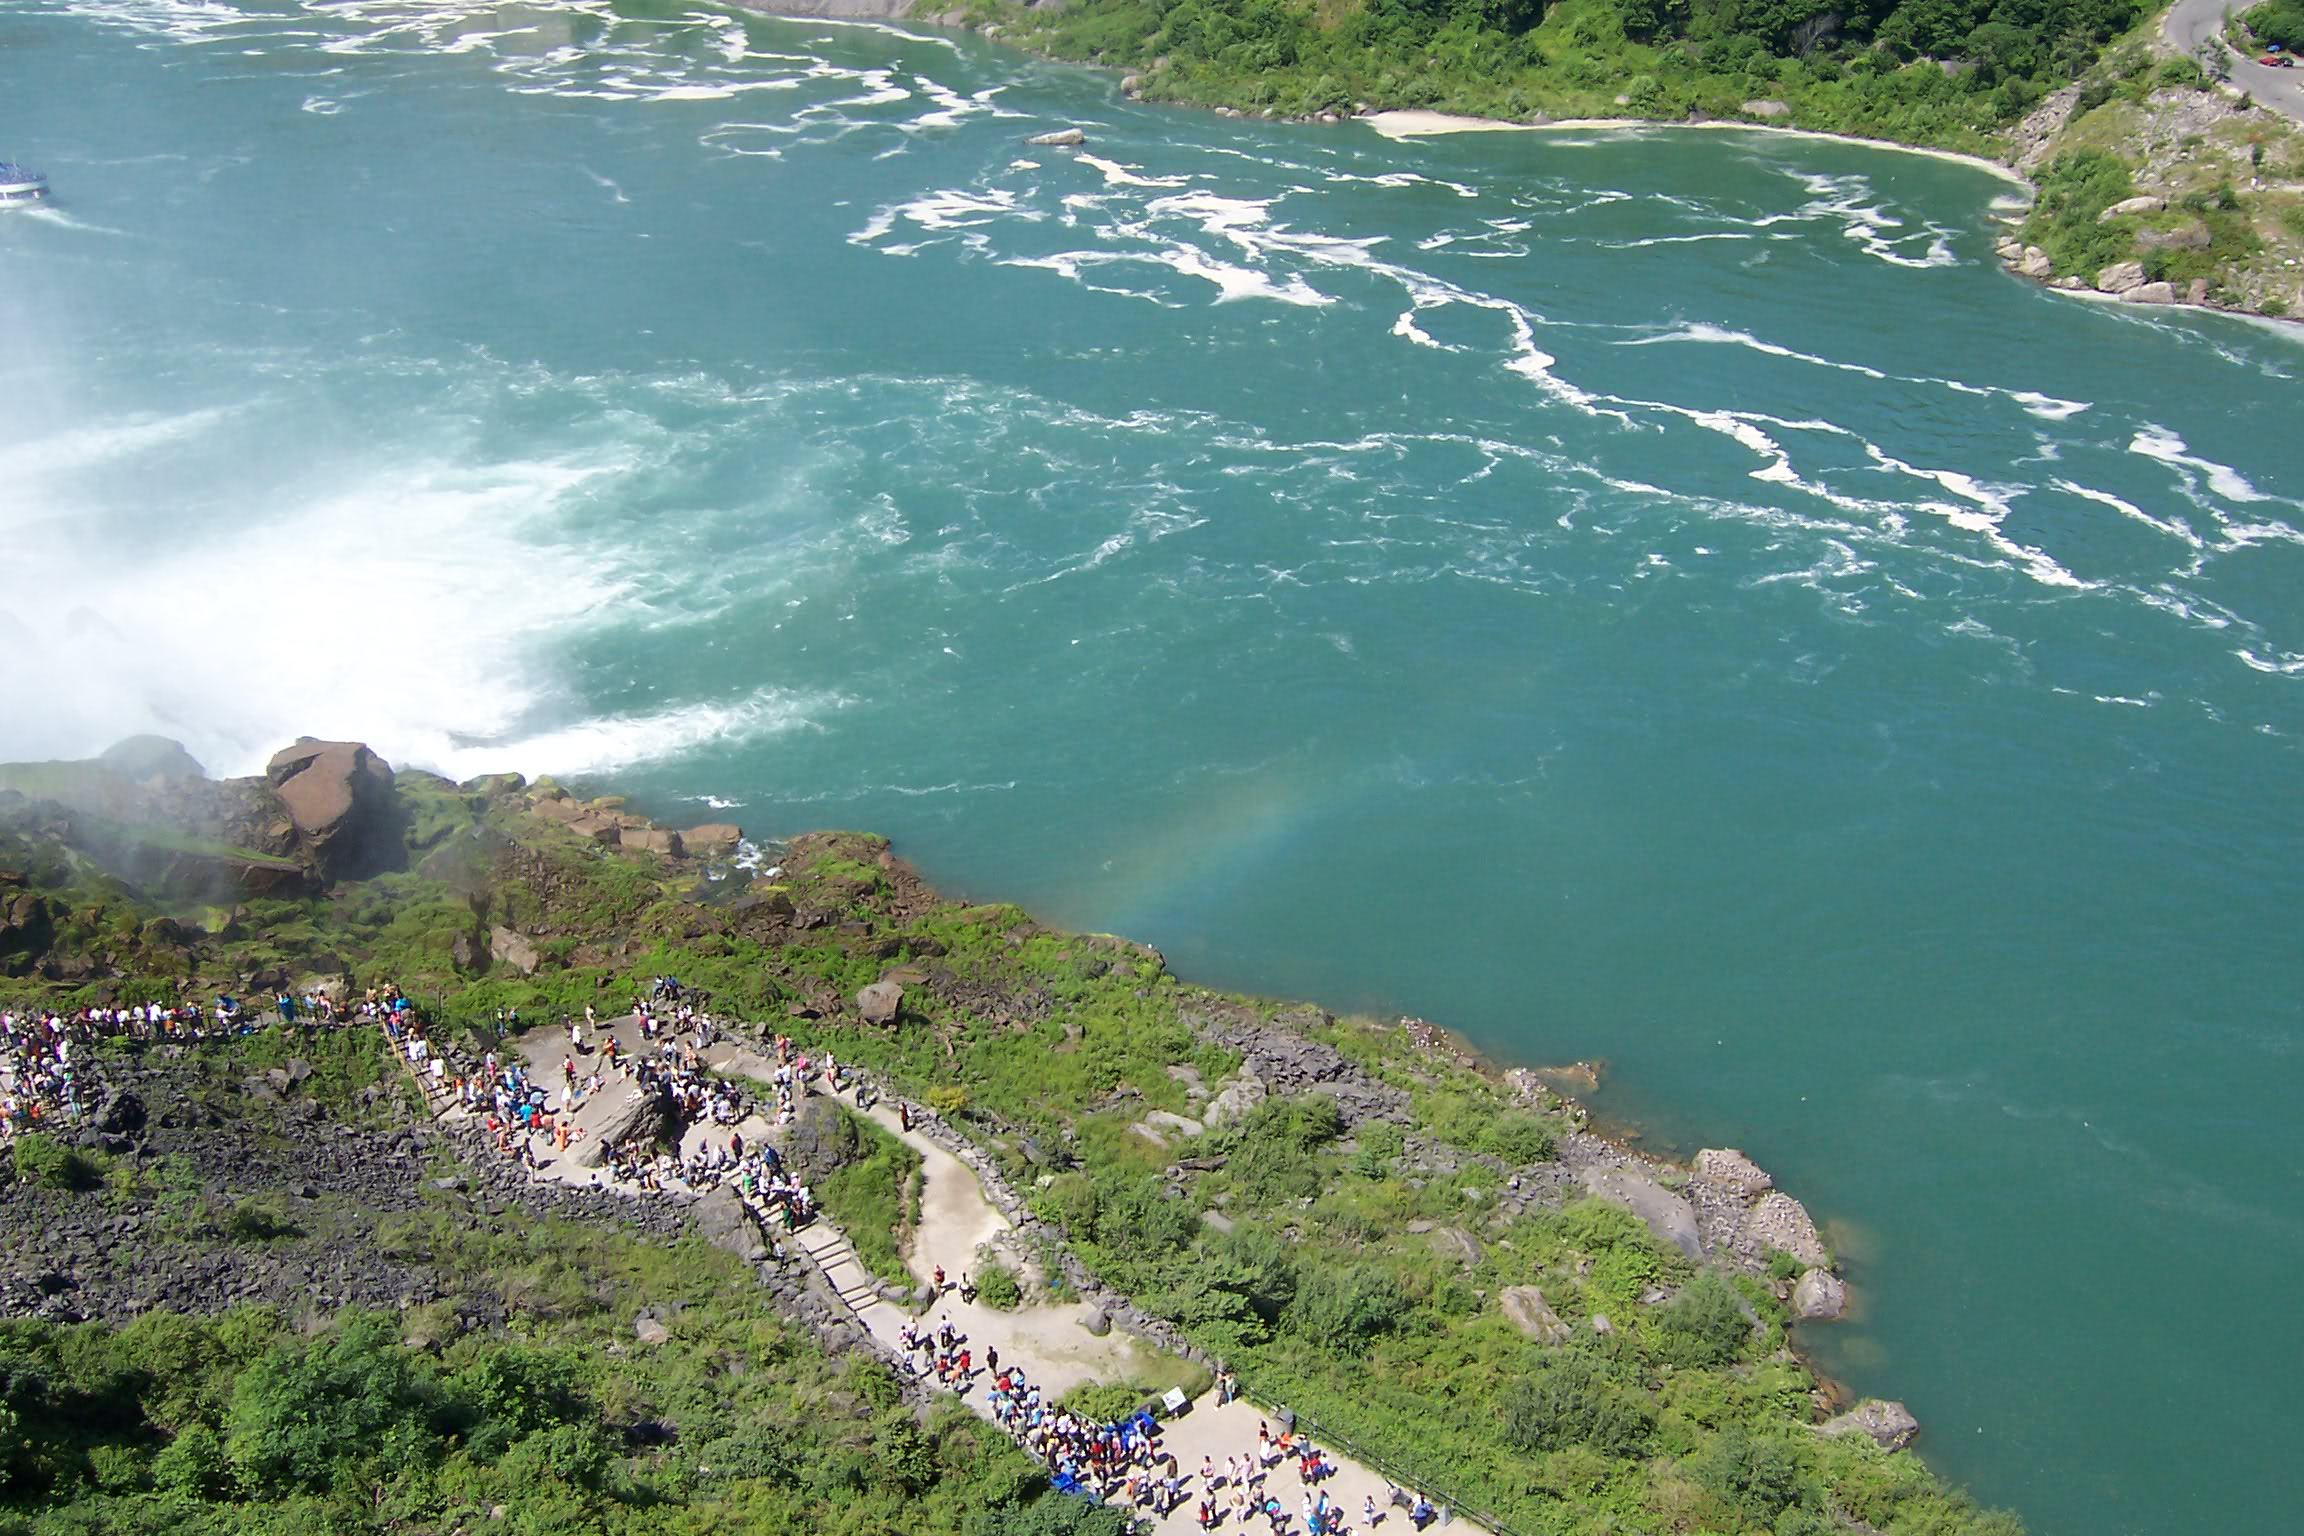 6 The Beauty of Niagara Falls